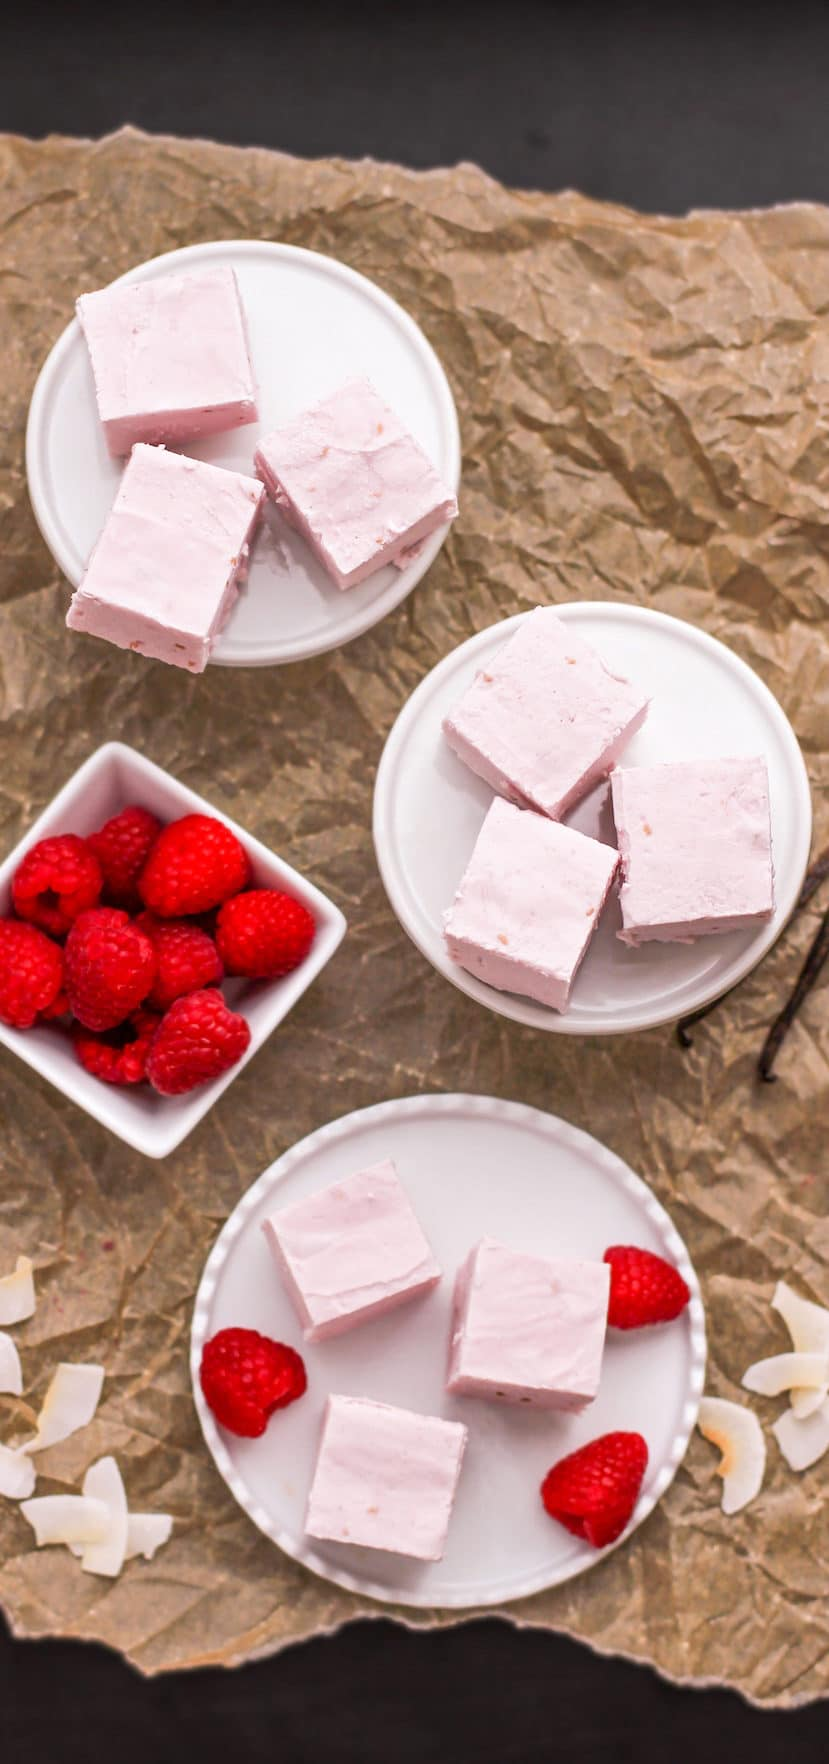 Healthy Raspberry Coconut Fudge (refined sugar free, low carb, high protein) - Desserts with Benefits